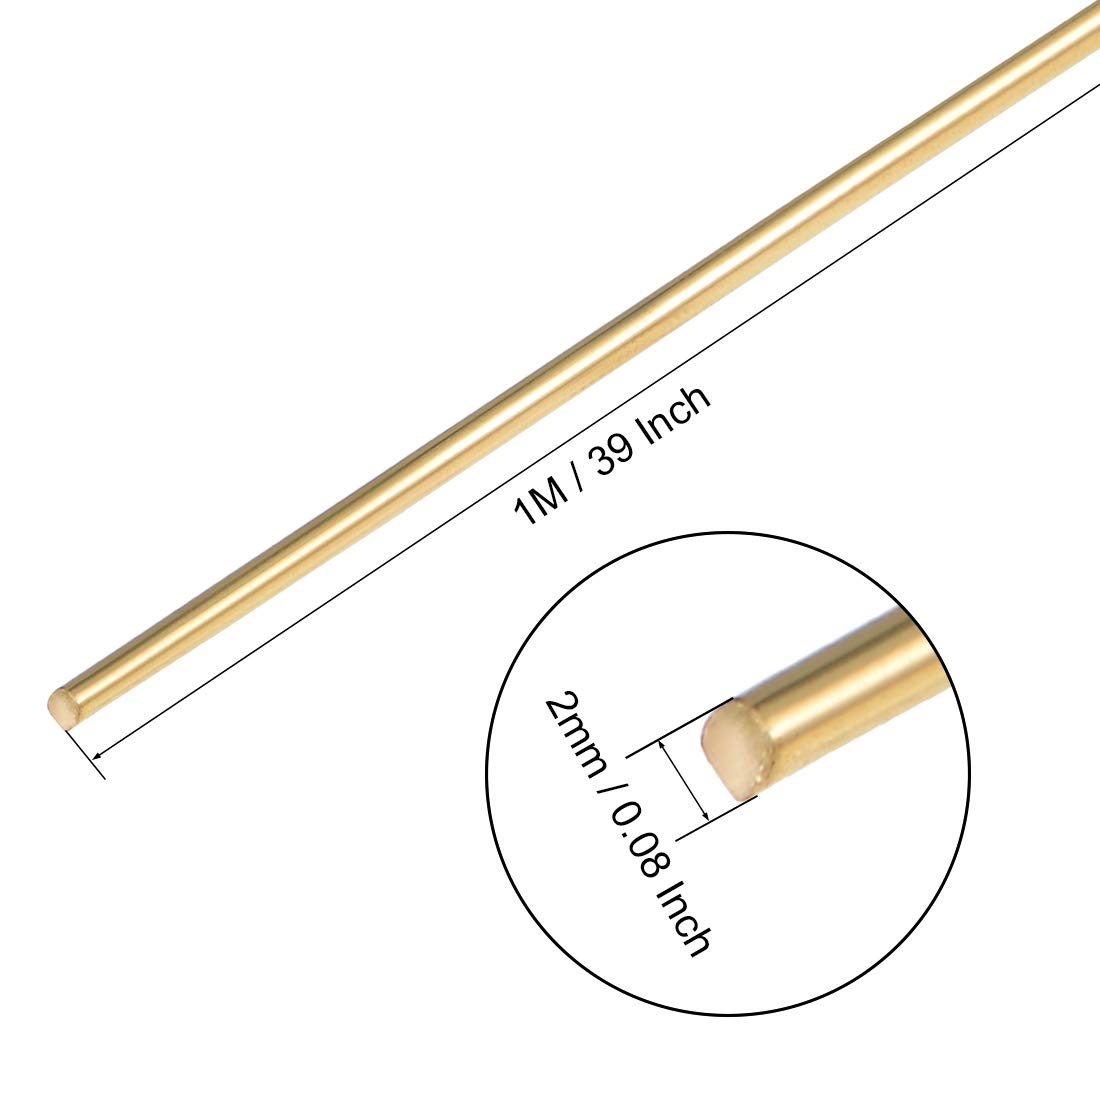 uxcell Filler Rods Brass 1.2mm x 39 Inch TIG Welding Rod Wire Brazing Rods